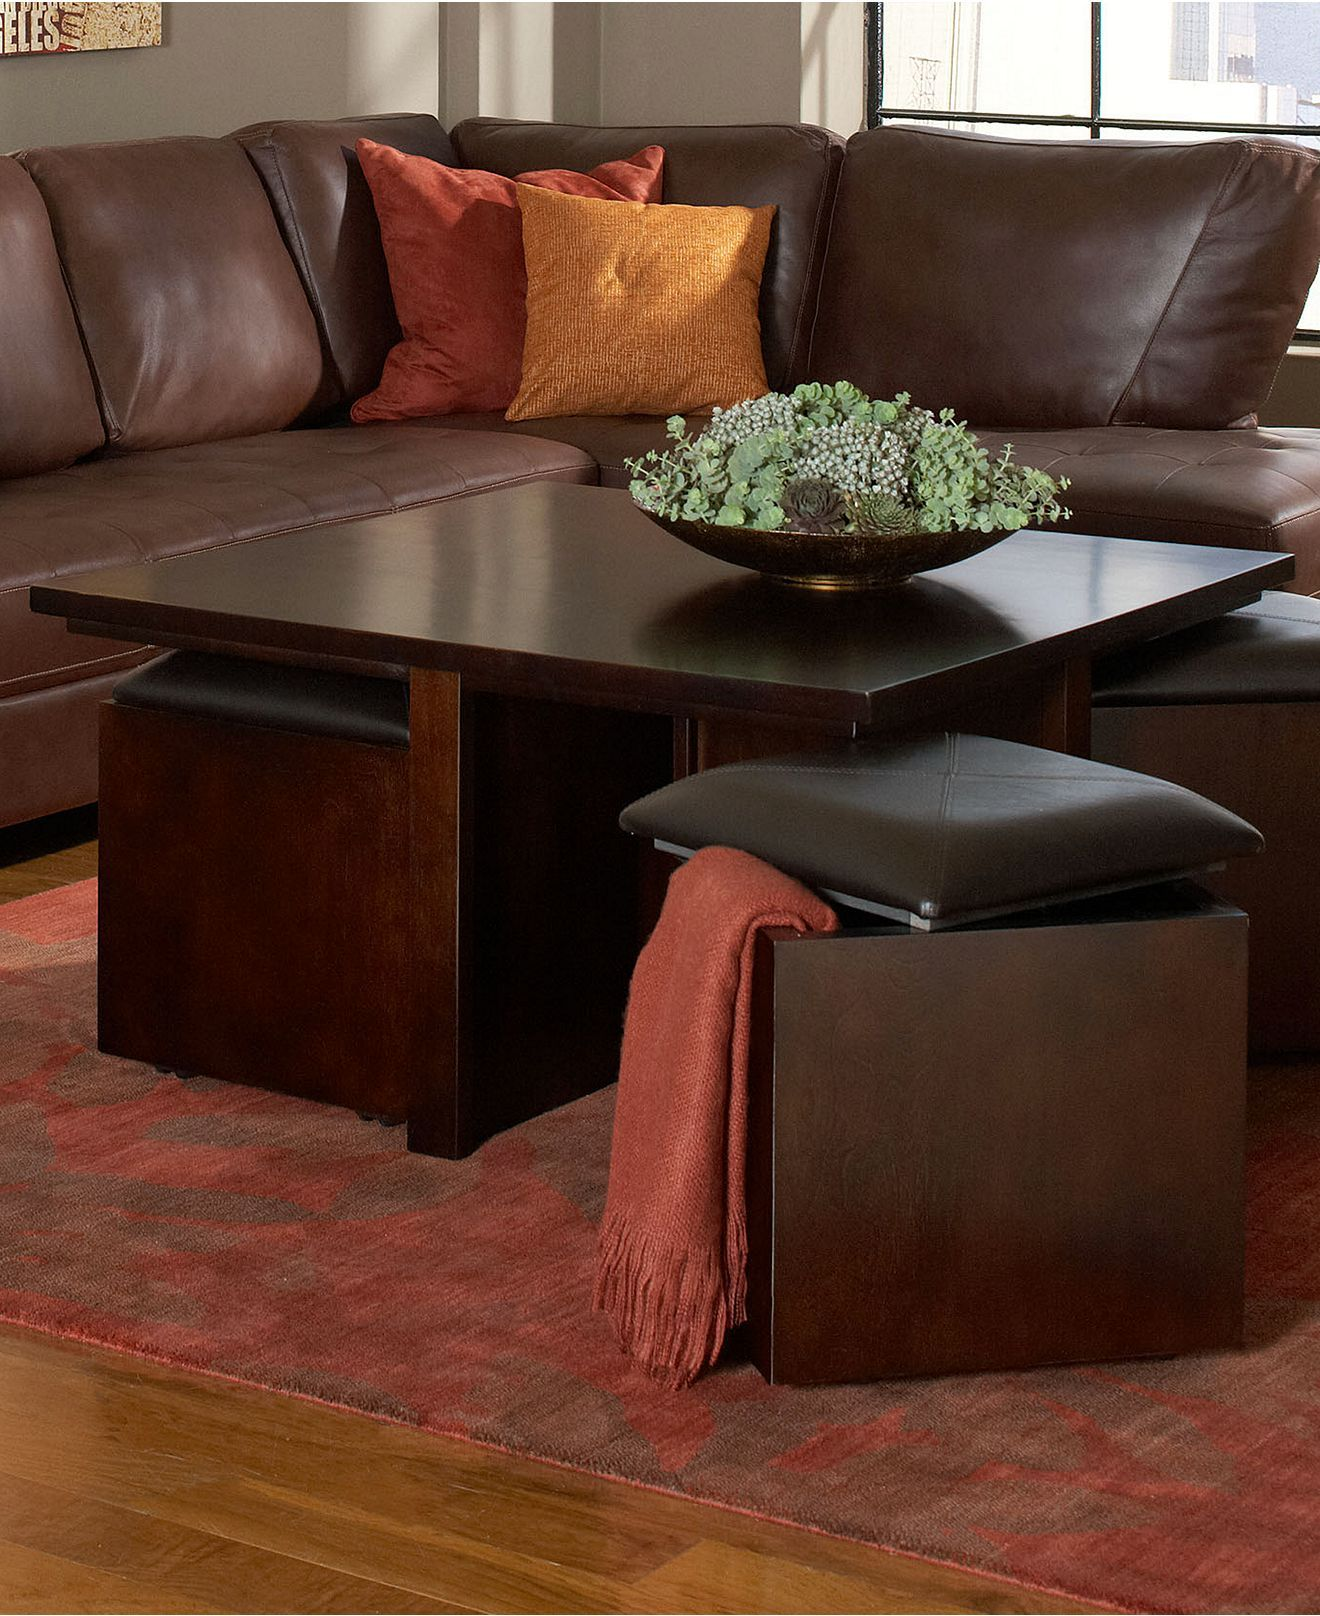 Pelham Square Cocktail Table With Four Storage Cubes Extra Storage And Seating Home Decor